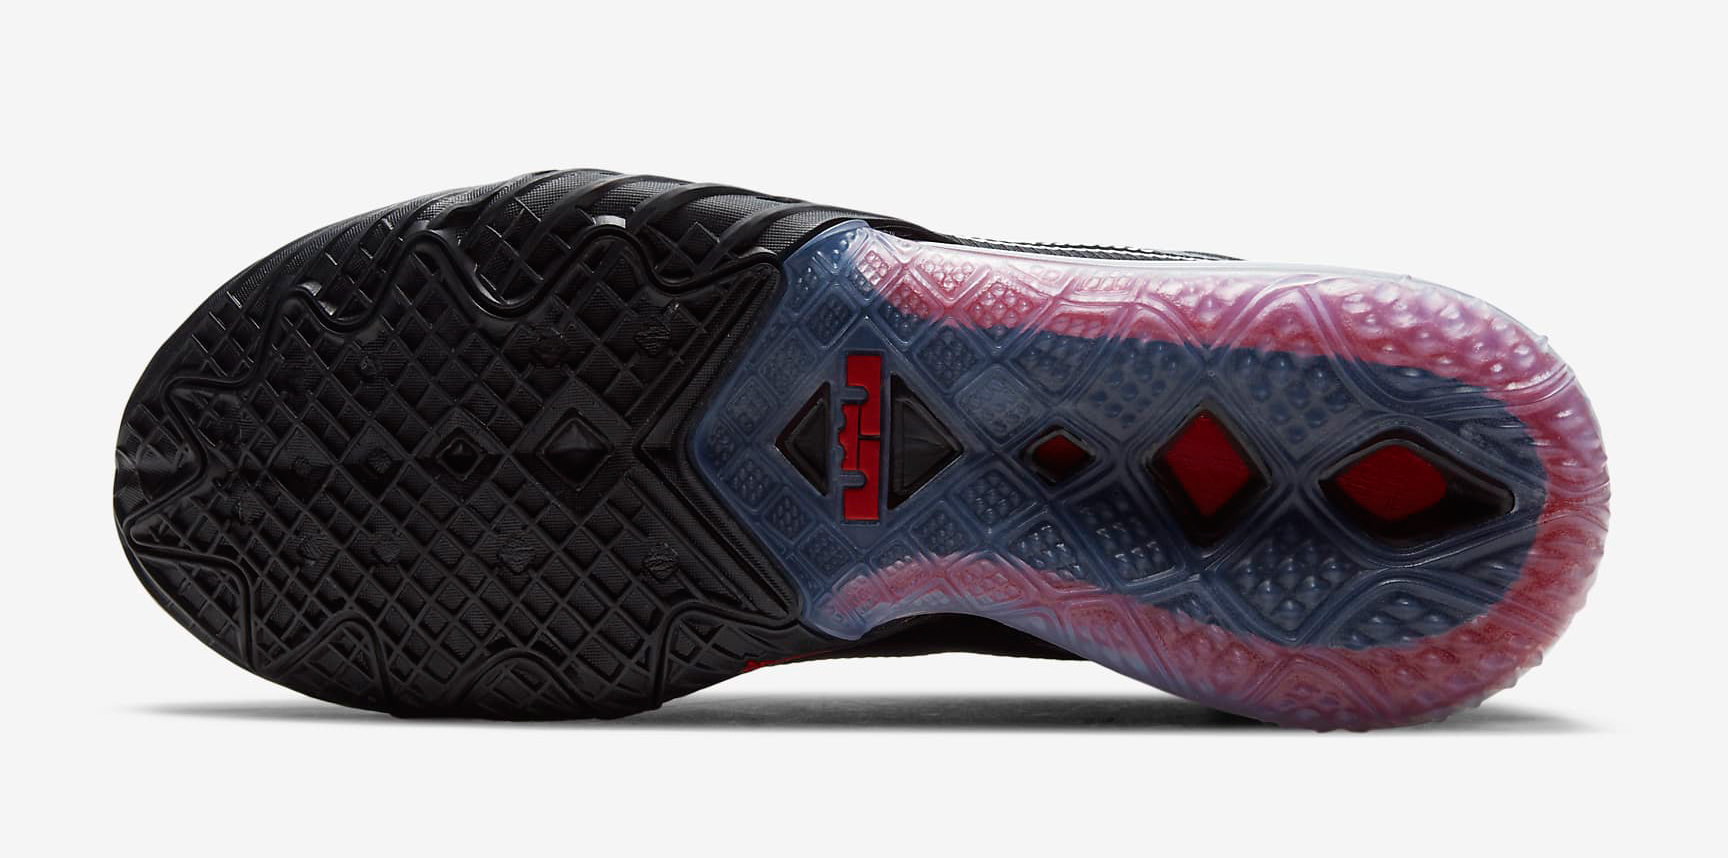 nike-lebron-18-low-bred-black-university-red-release-date-price-where-to-buy-6